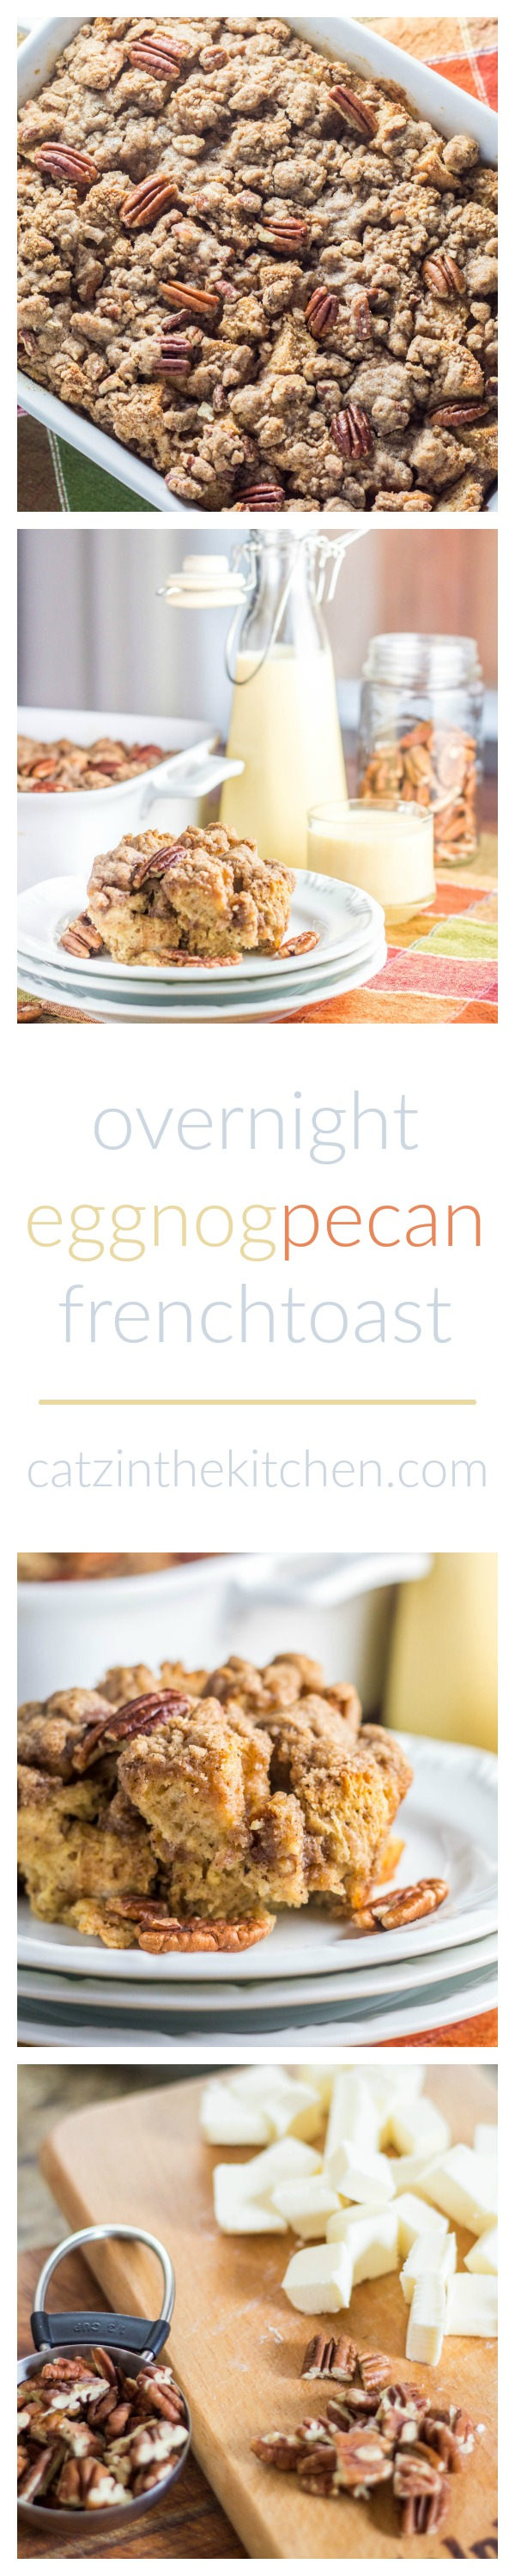 Overnight Eggnog Pecan French Toast | Catz in the Kitchen | catzinthekitchen.com | #breakfast #brunch #pecan #eggnog